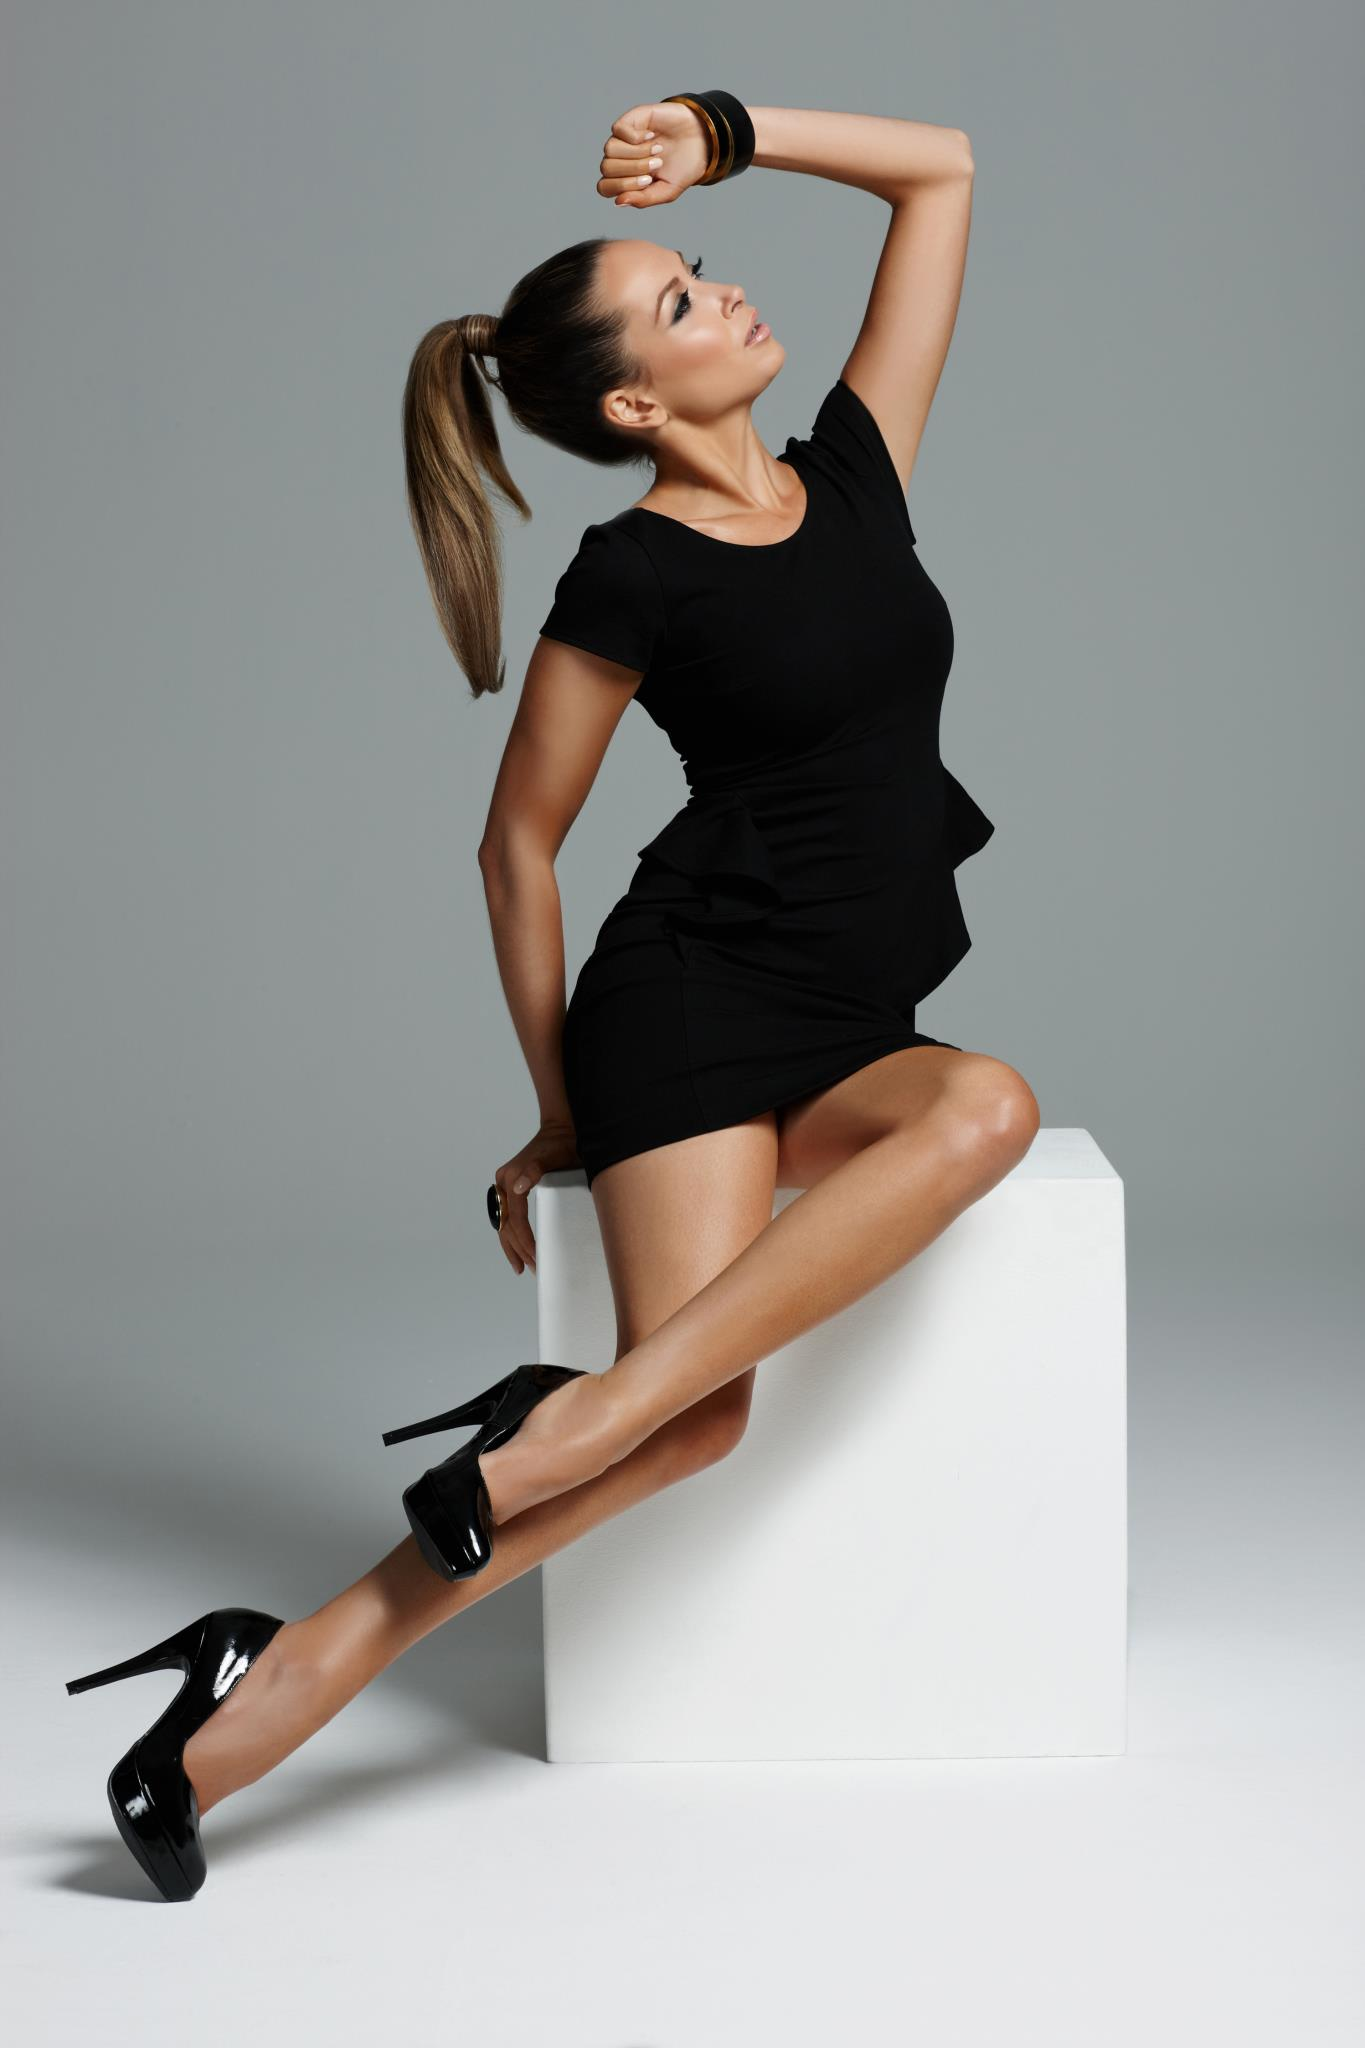 Mandy Capristo Images The Most Beautiful Legs In The World